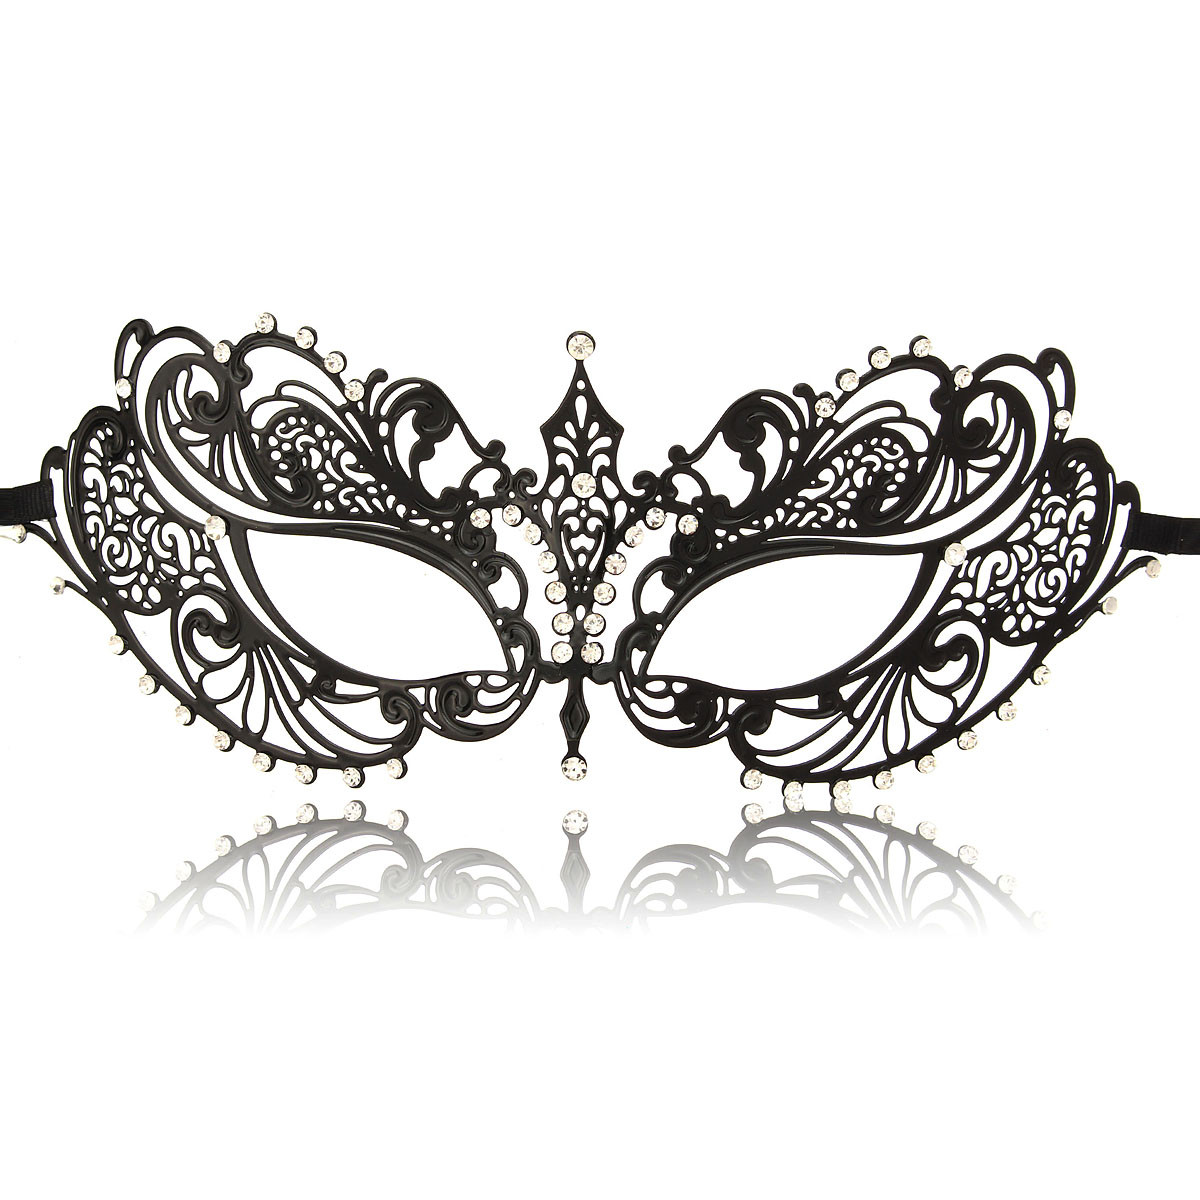 The best free Masquerade vector images. Download from 110